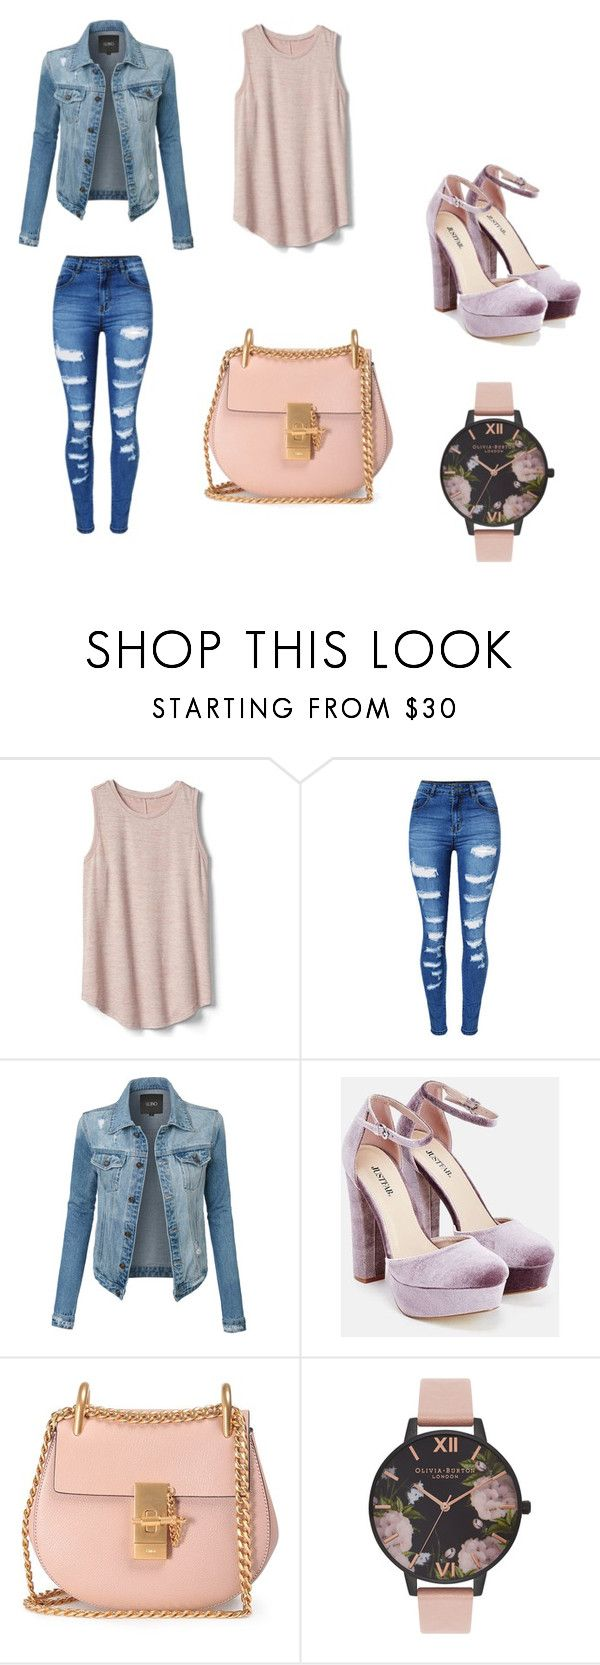 """Untitled #2"" by arminaa7 ❤ liked on Polyvore featuring Gap, WithChic, LE3NO, JustFab, Chloé and Olivia Burton"